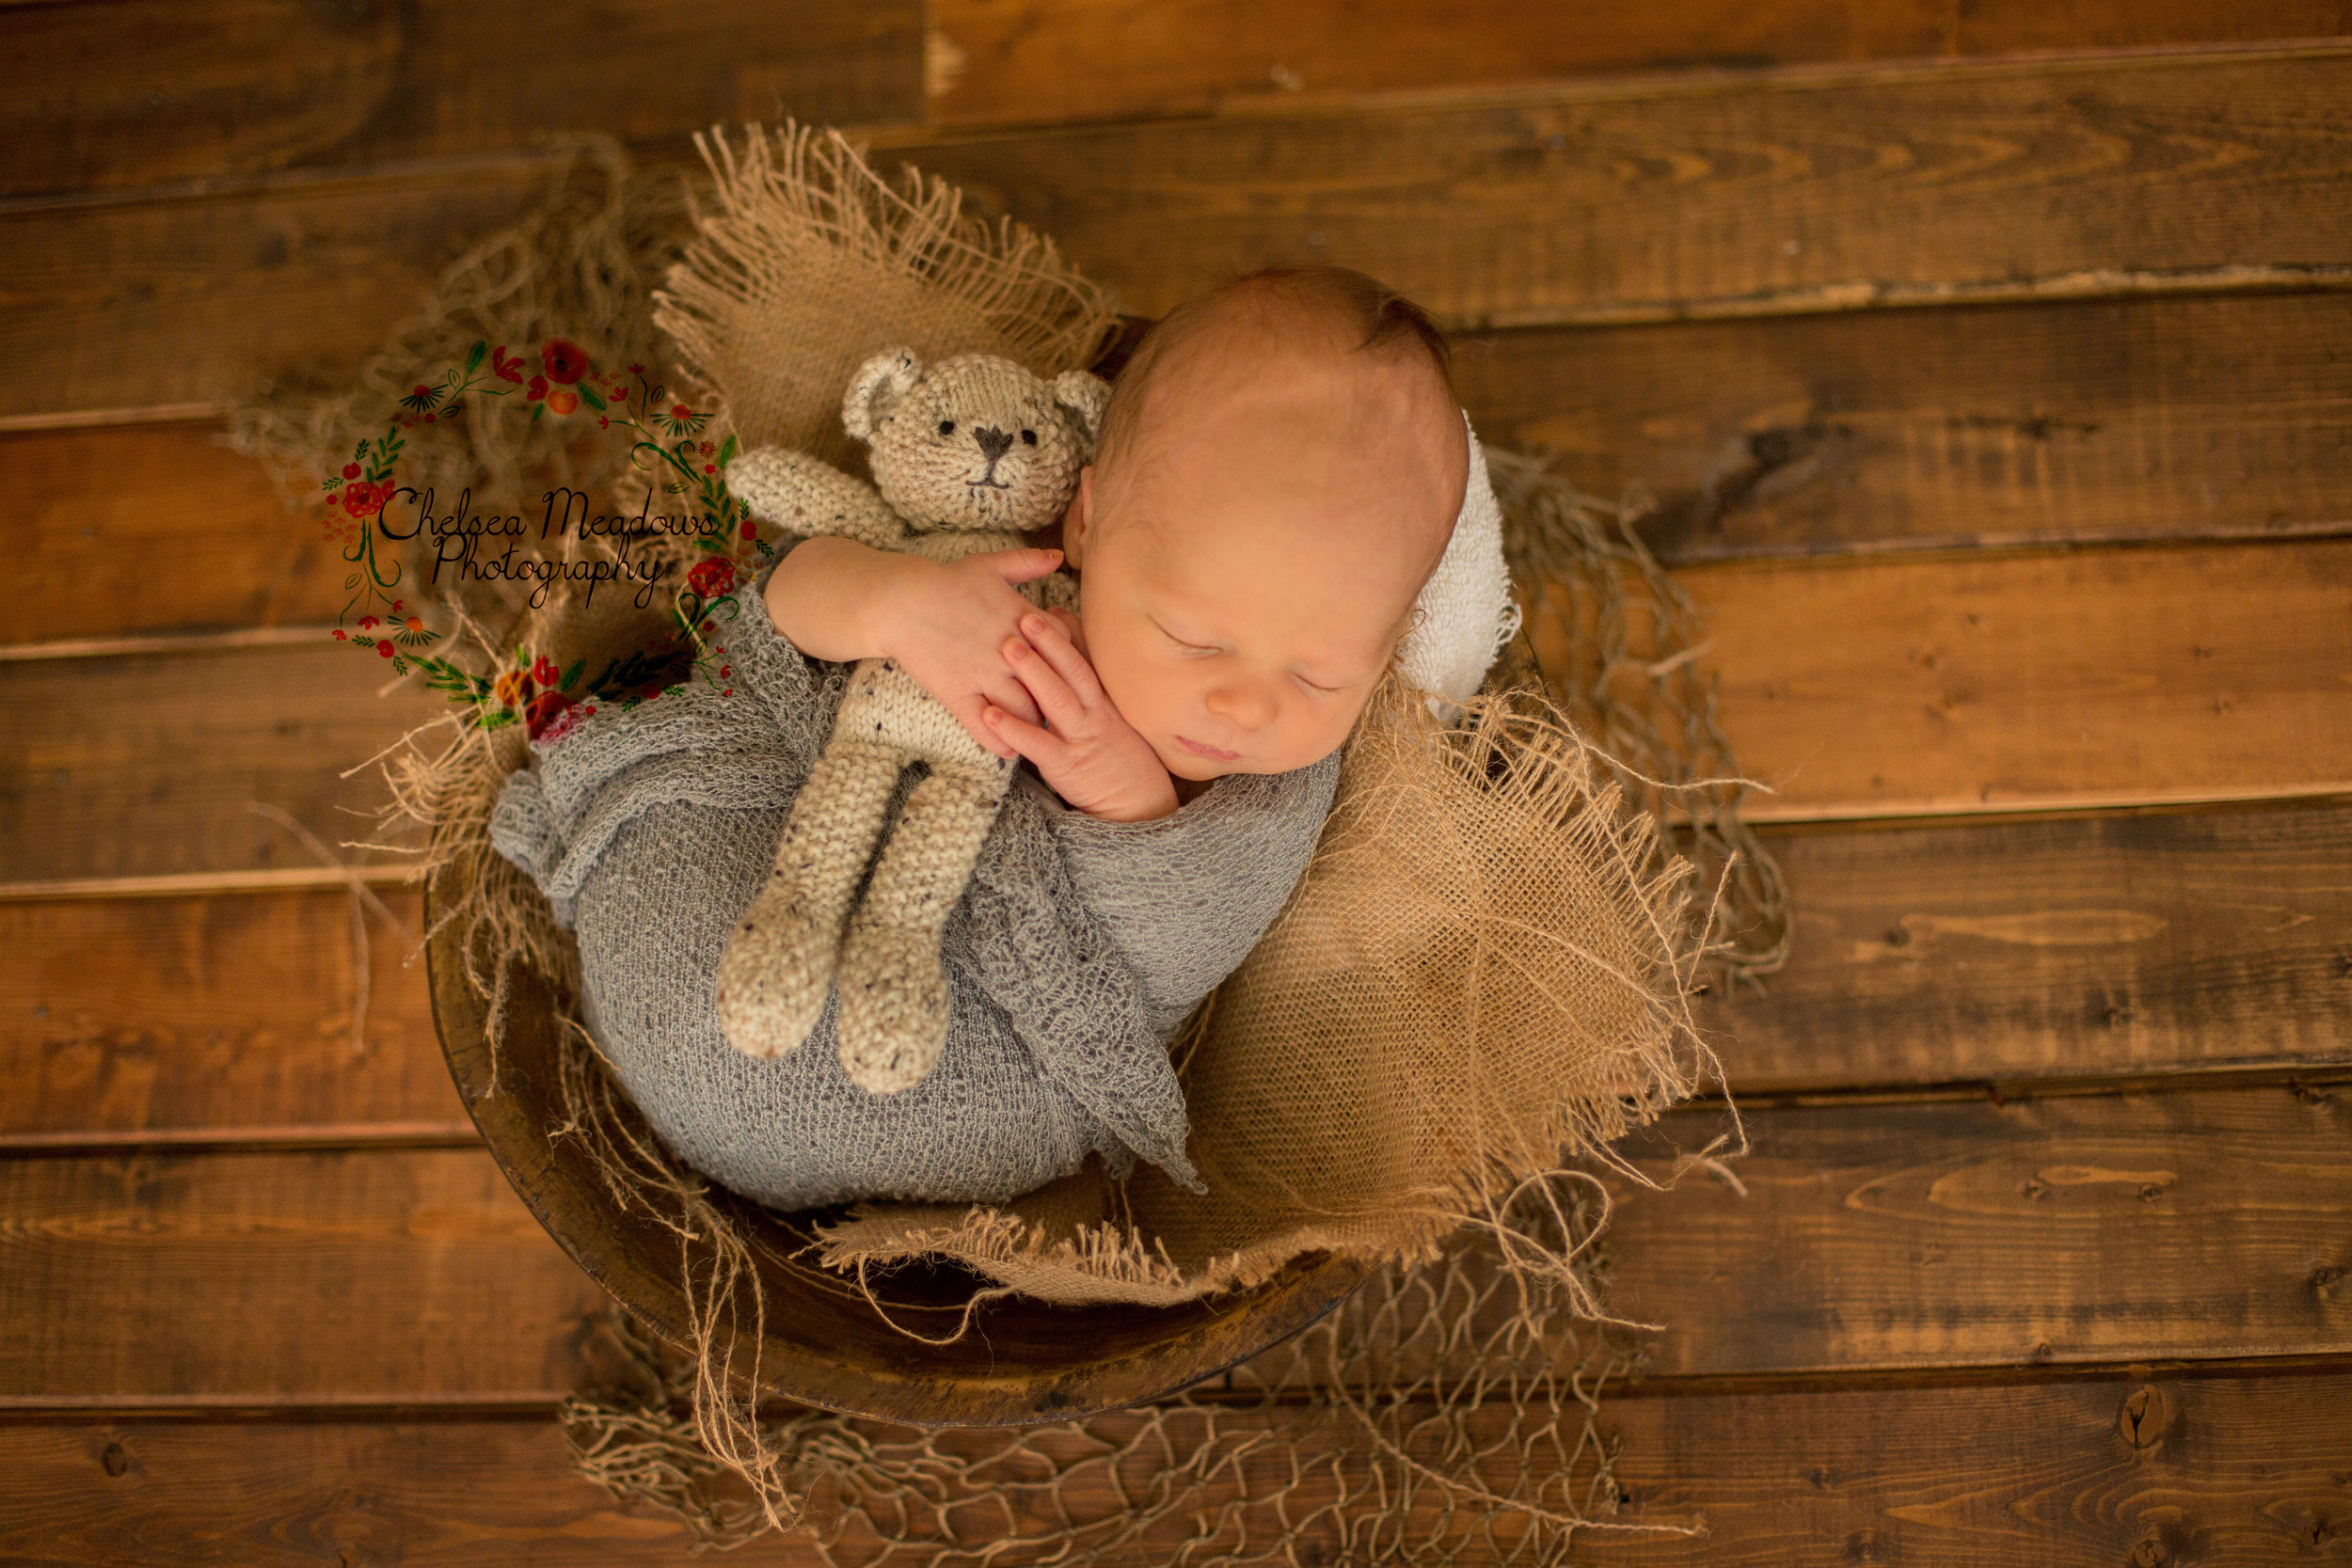 Owen Newborn Session - SM - Nashville Newborn Photographer - Chelsea Meadows Photography (4)_edited-1.jpg